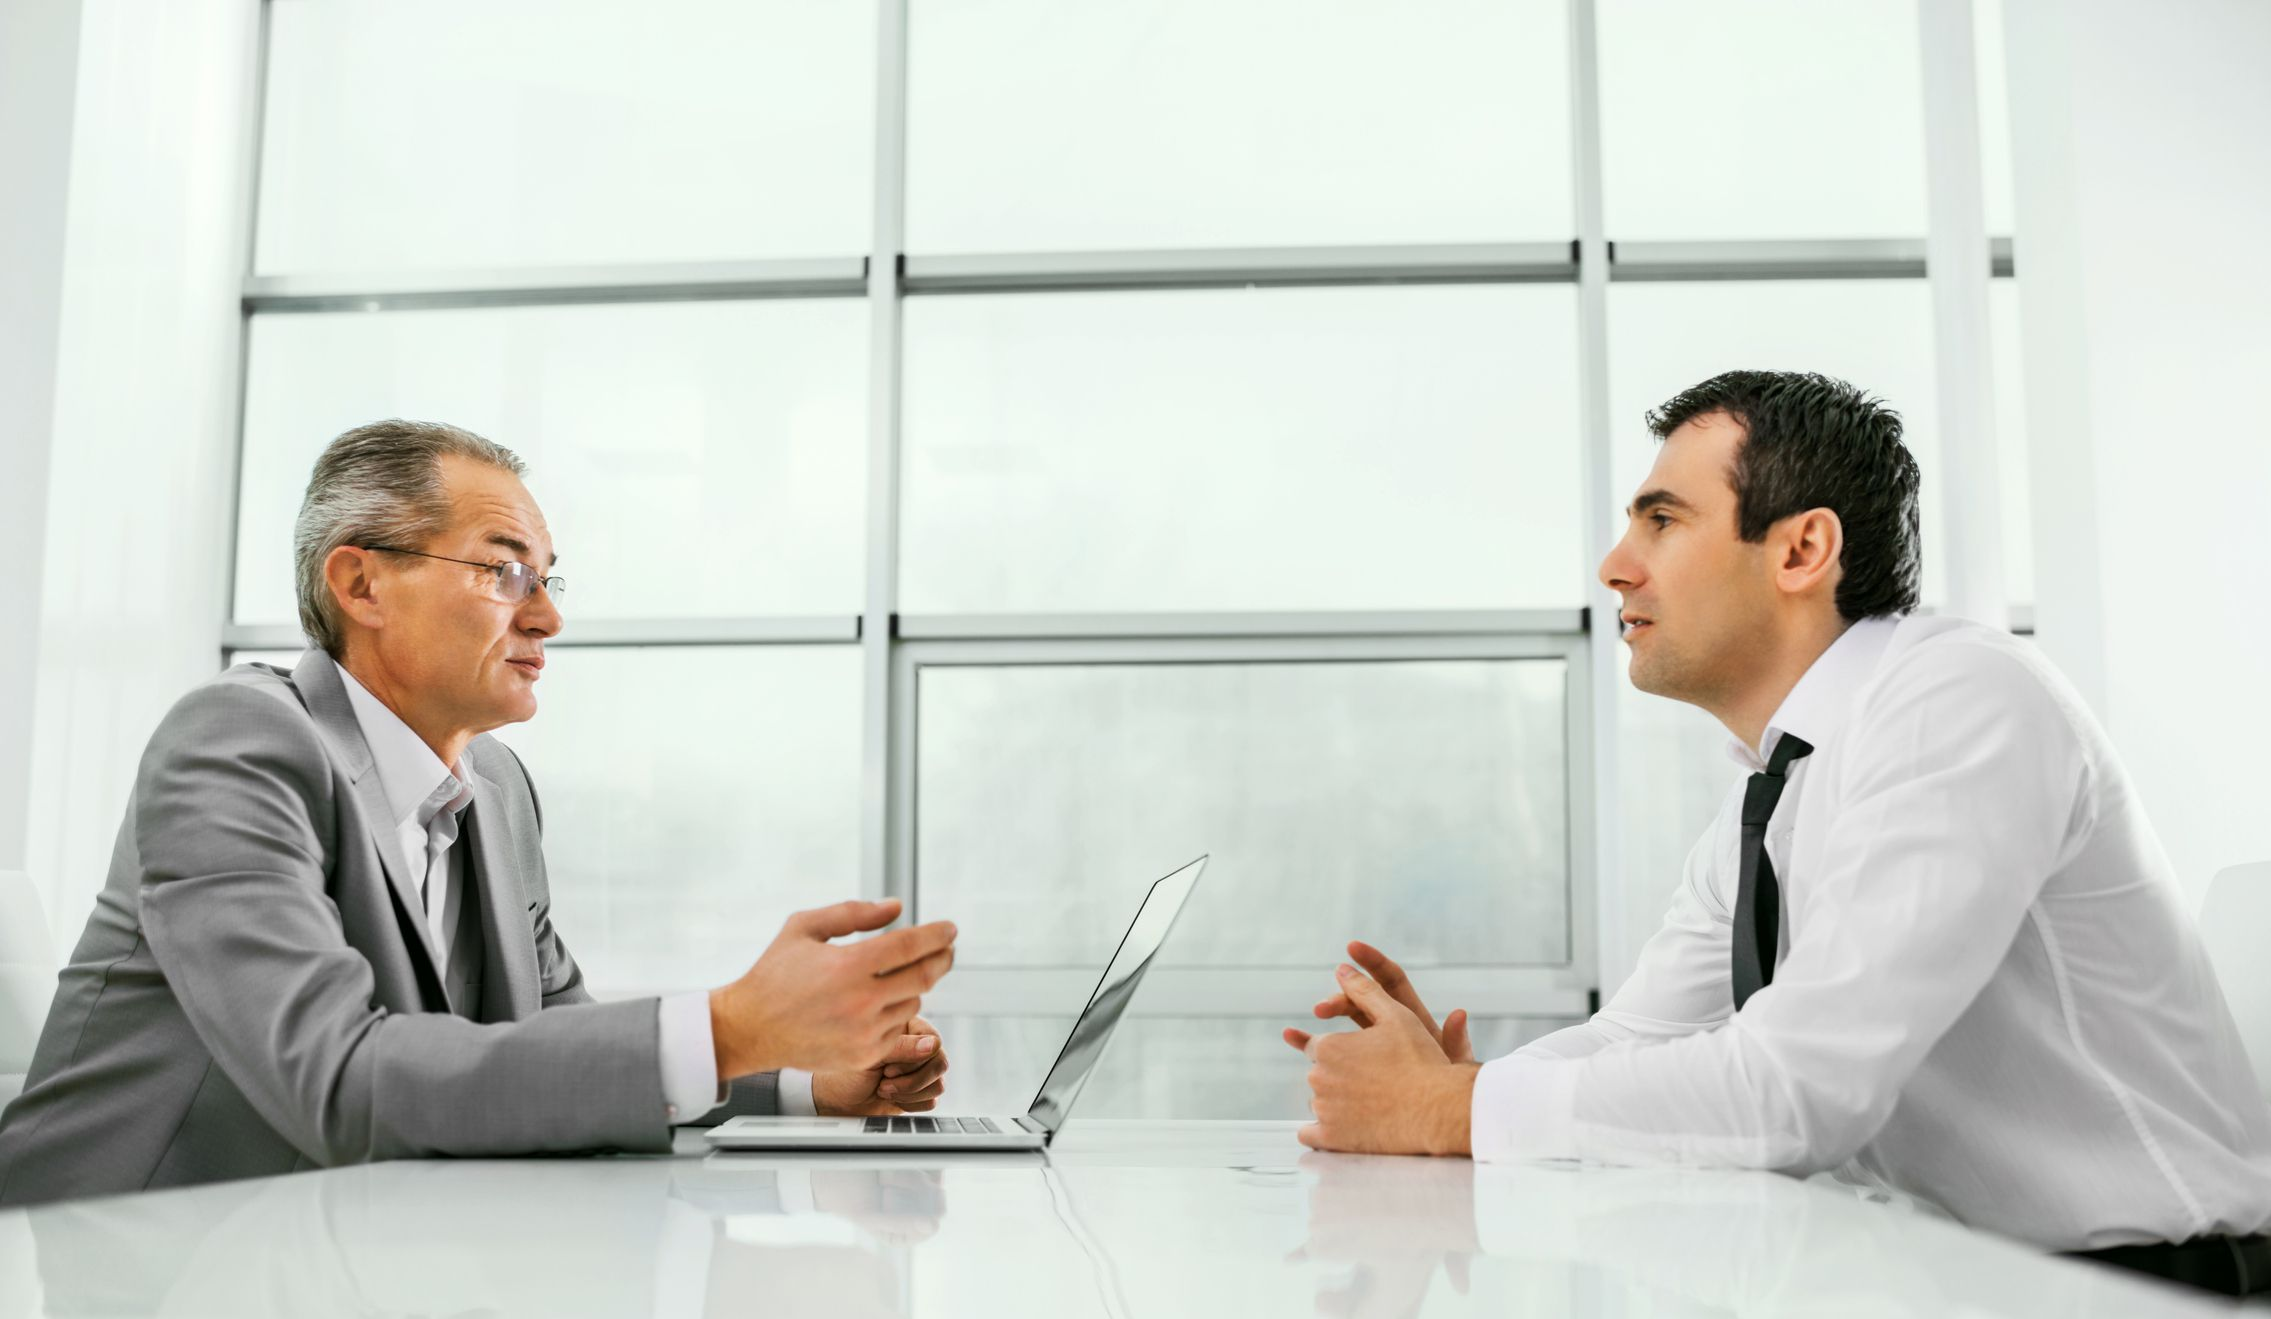 Interview Questions About Your Emotional Intelligence